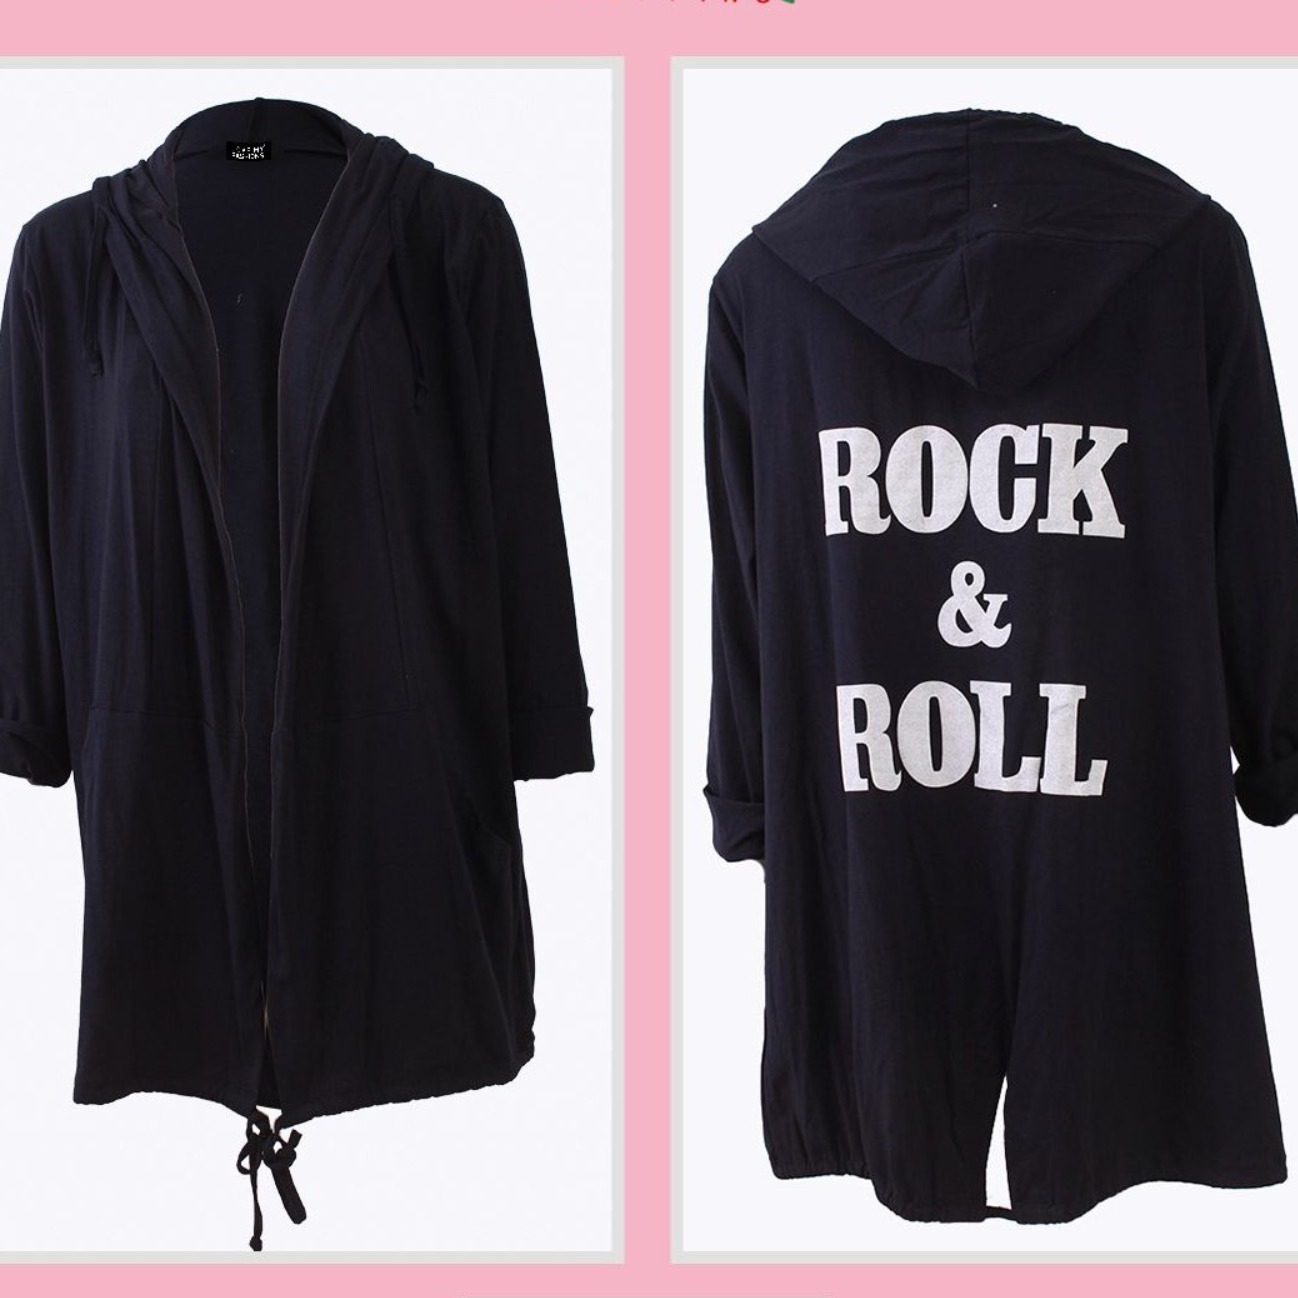 Rock & roll hooded cotton jersey jacket